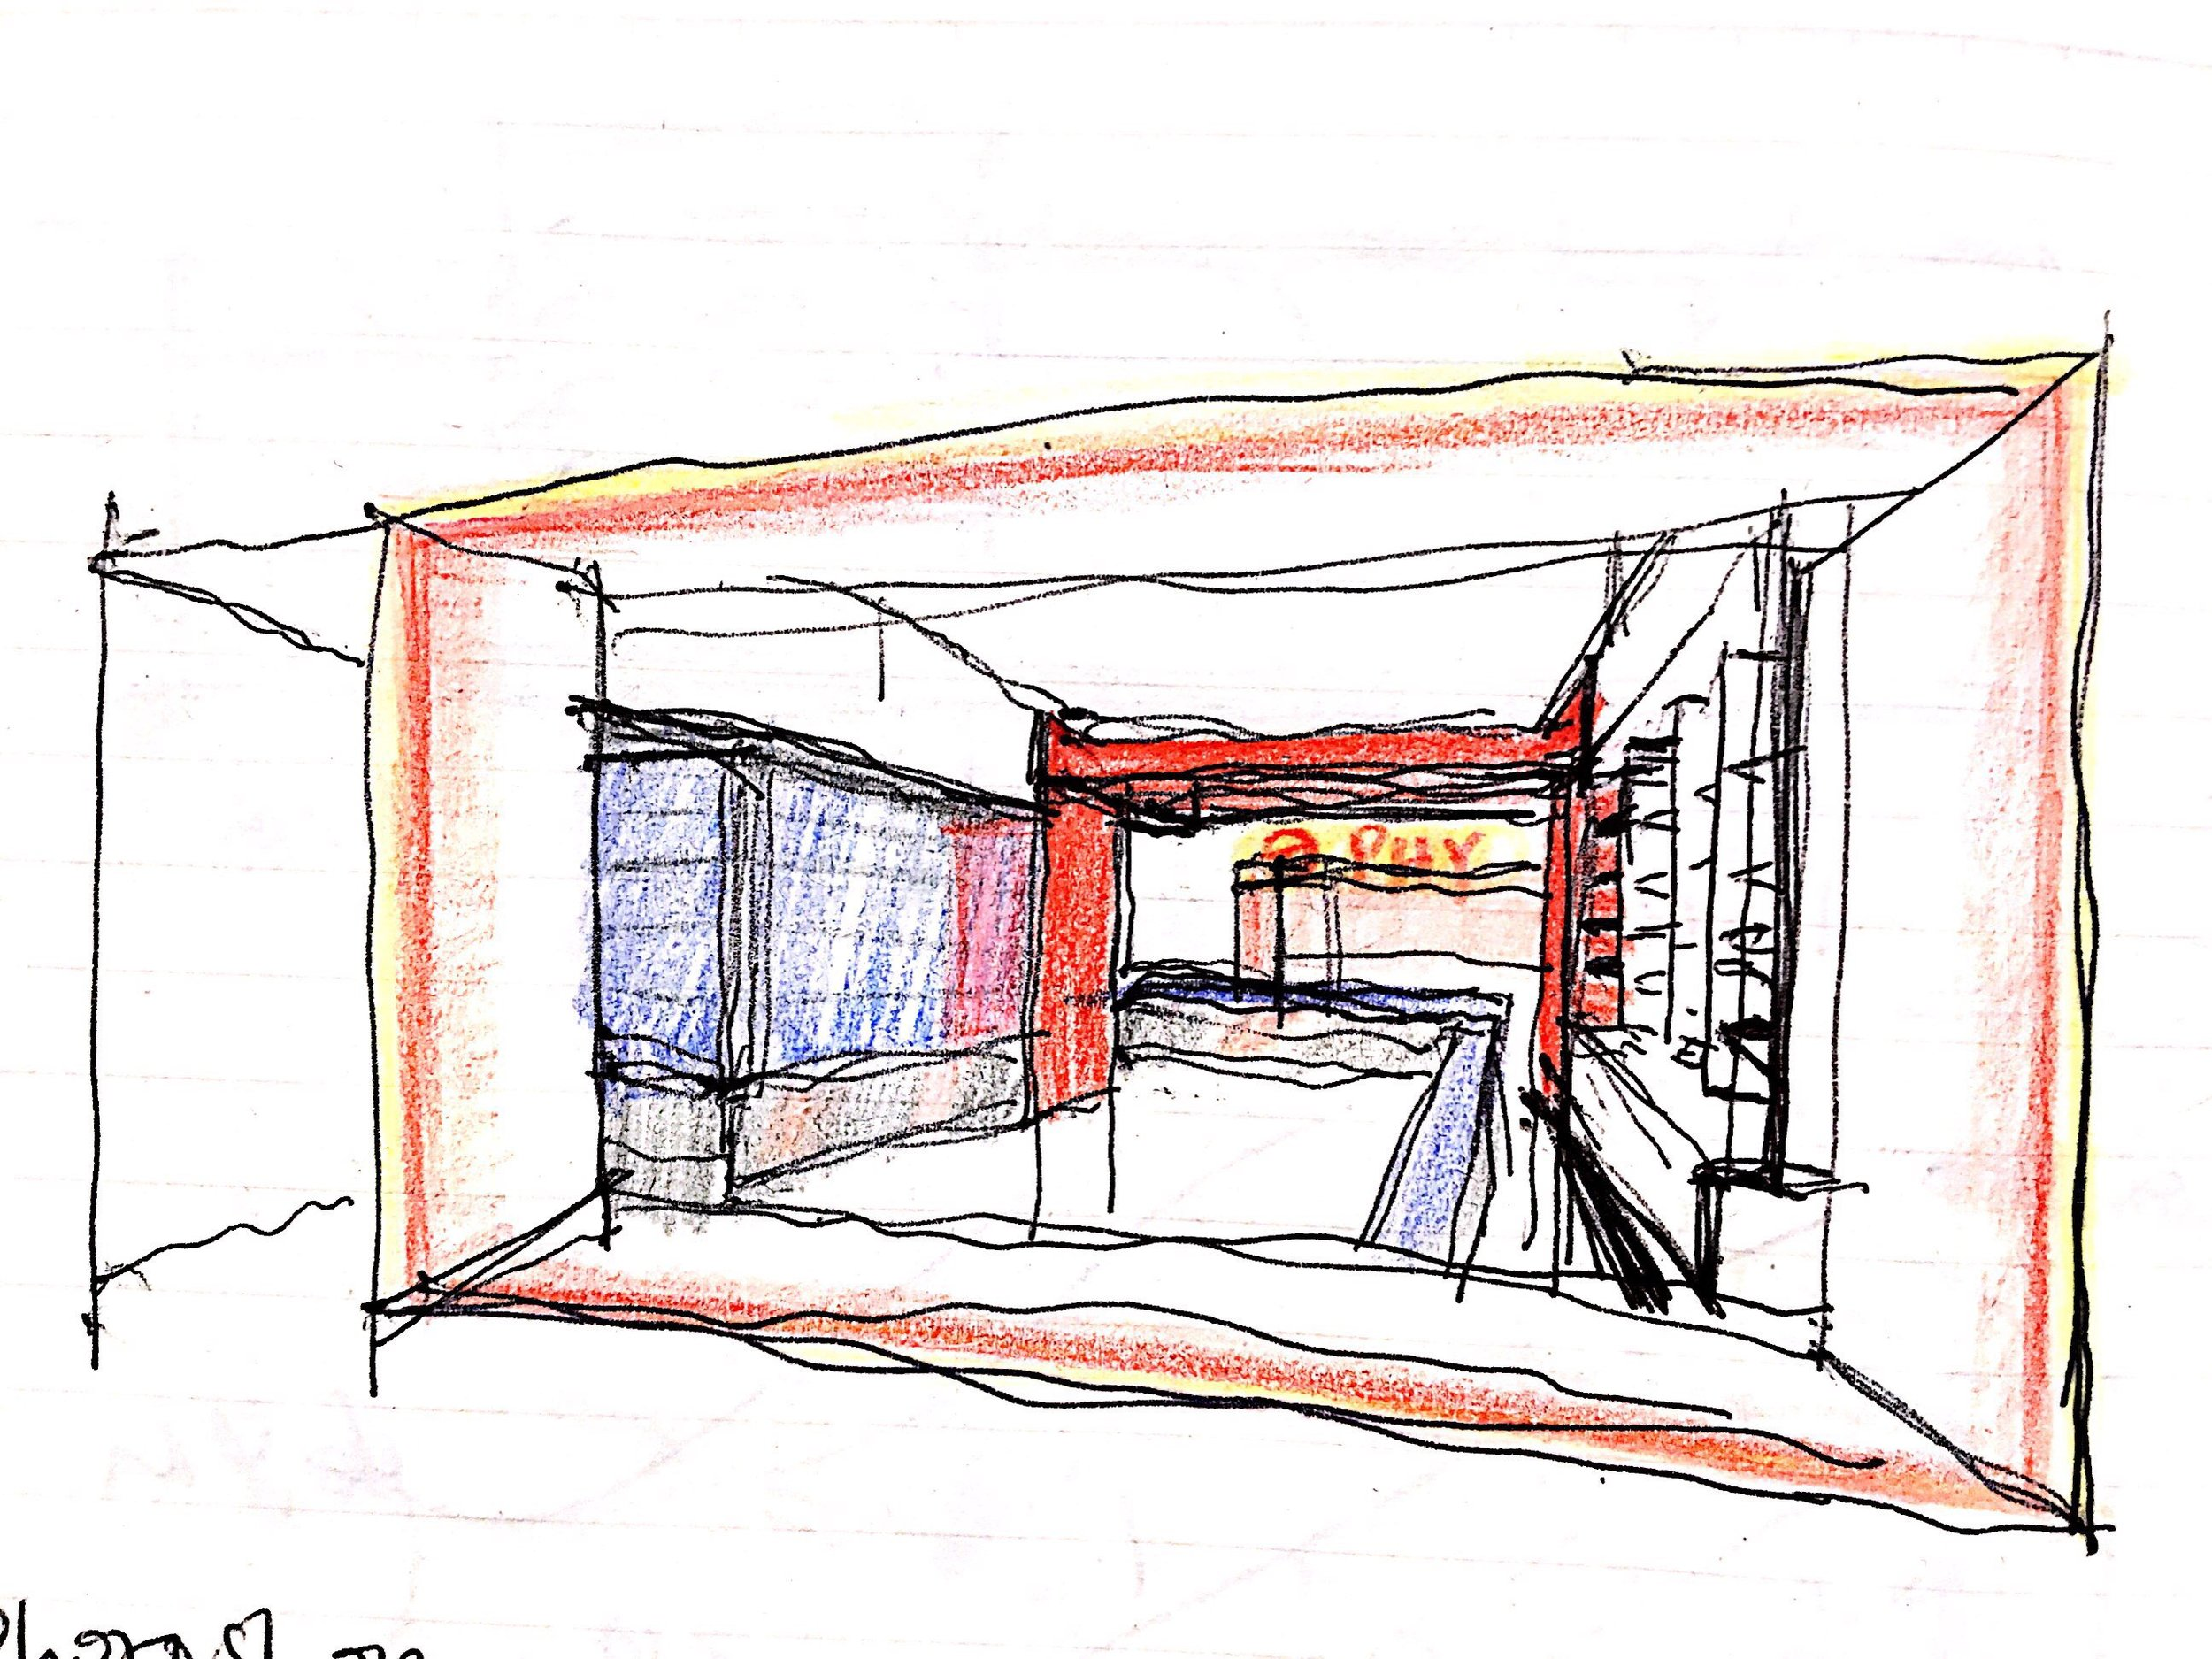 Sketch - frame behind frame from shop window to arch leads people's view to the depth of shop